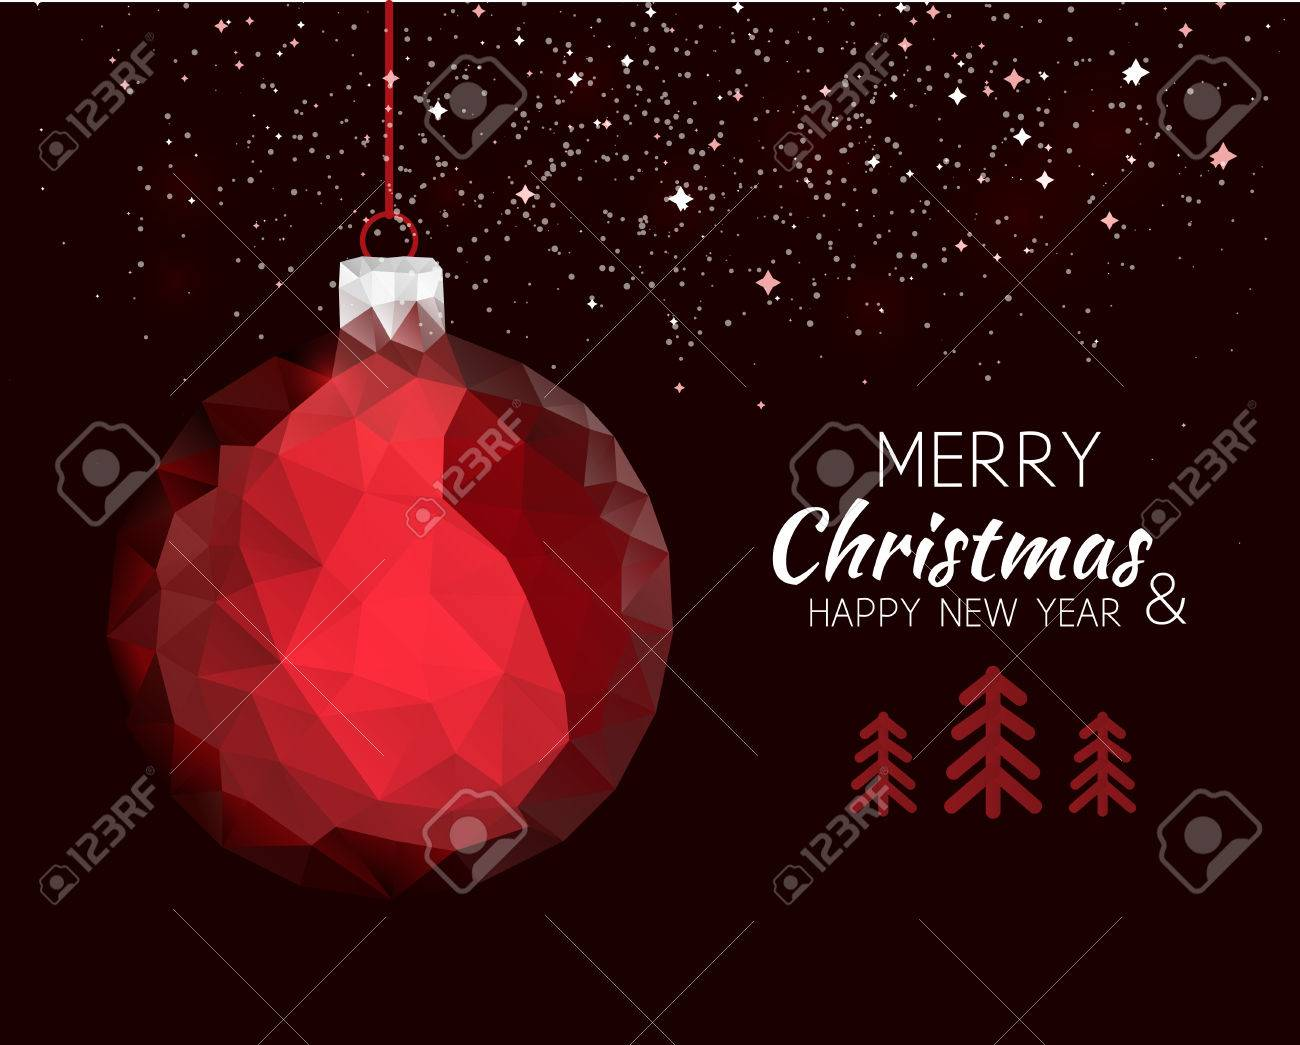 Merry Christmas Happy New Year Red Ornament Ball Shape In Hipster ...